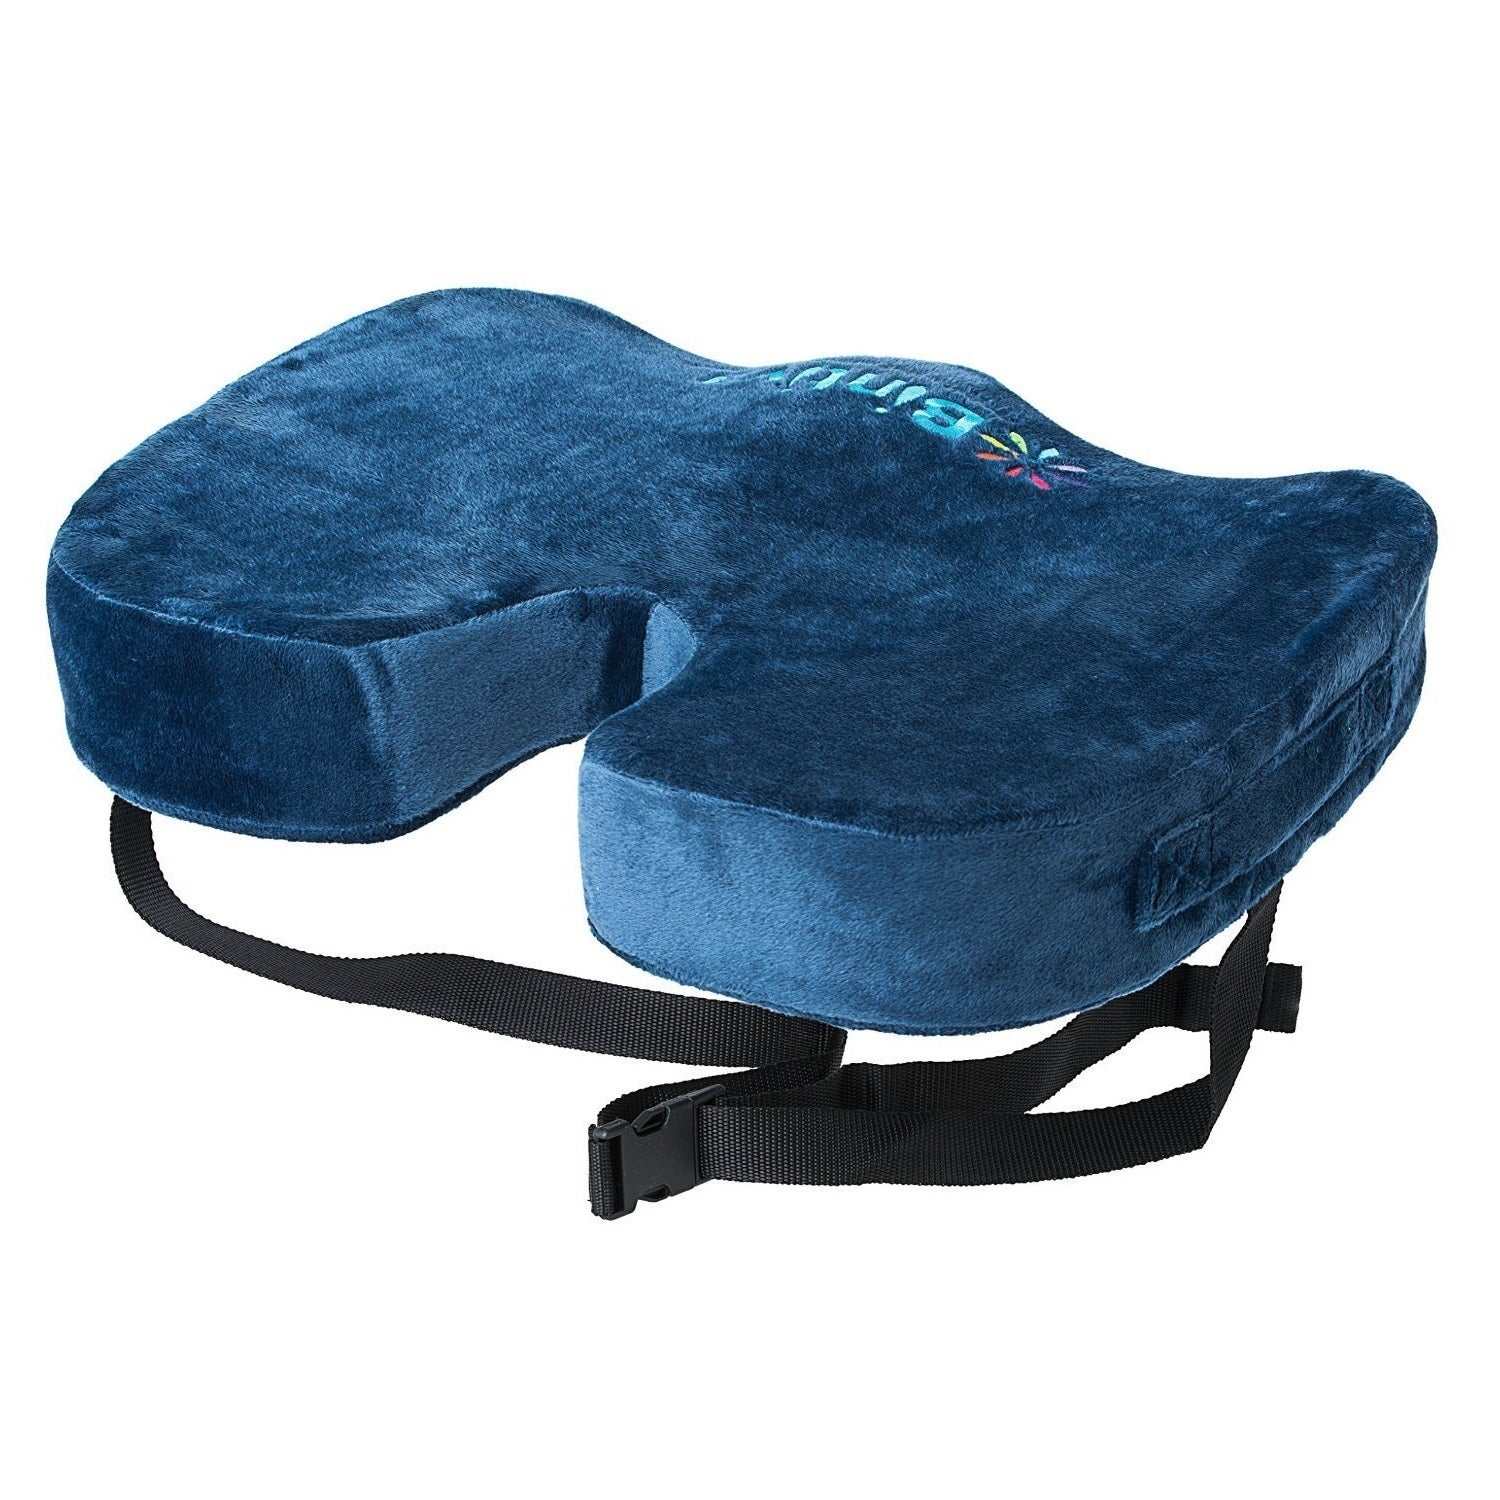 wagan convenience layers foam chair healthmate gel power comfort memory cushion relaxfusion pillow coccyx pad